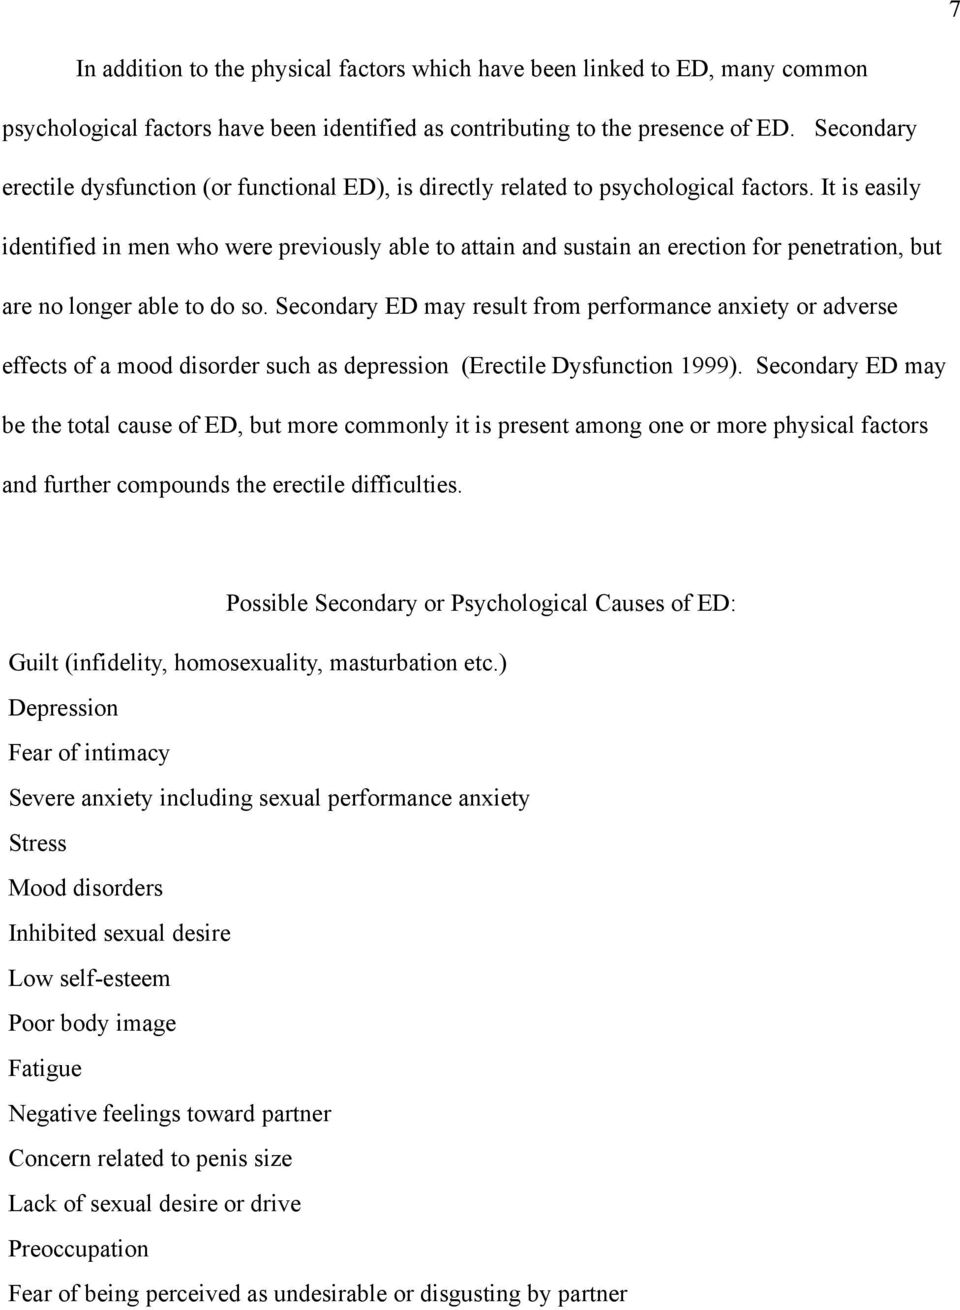 Sexual dysfunction secondary to depressive disorders